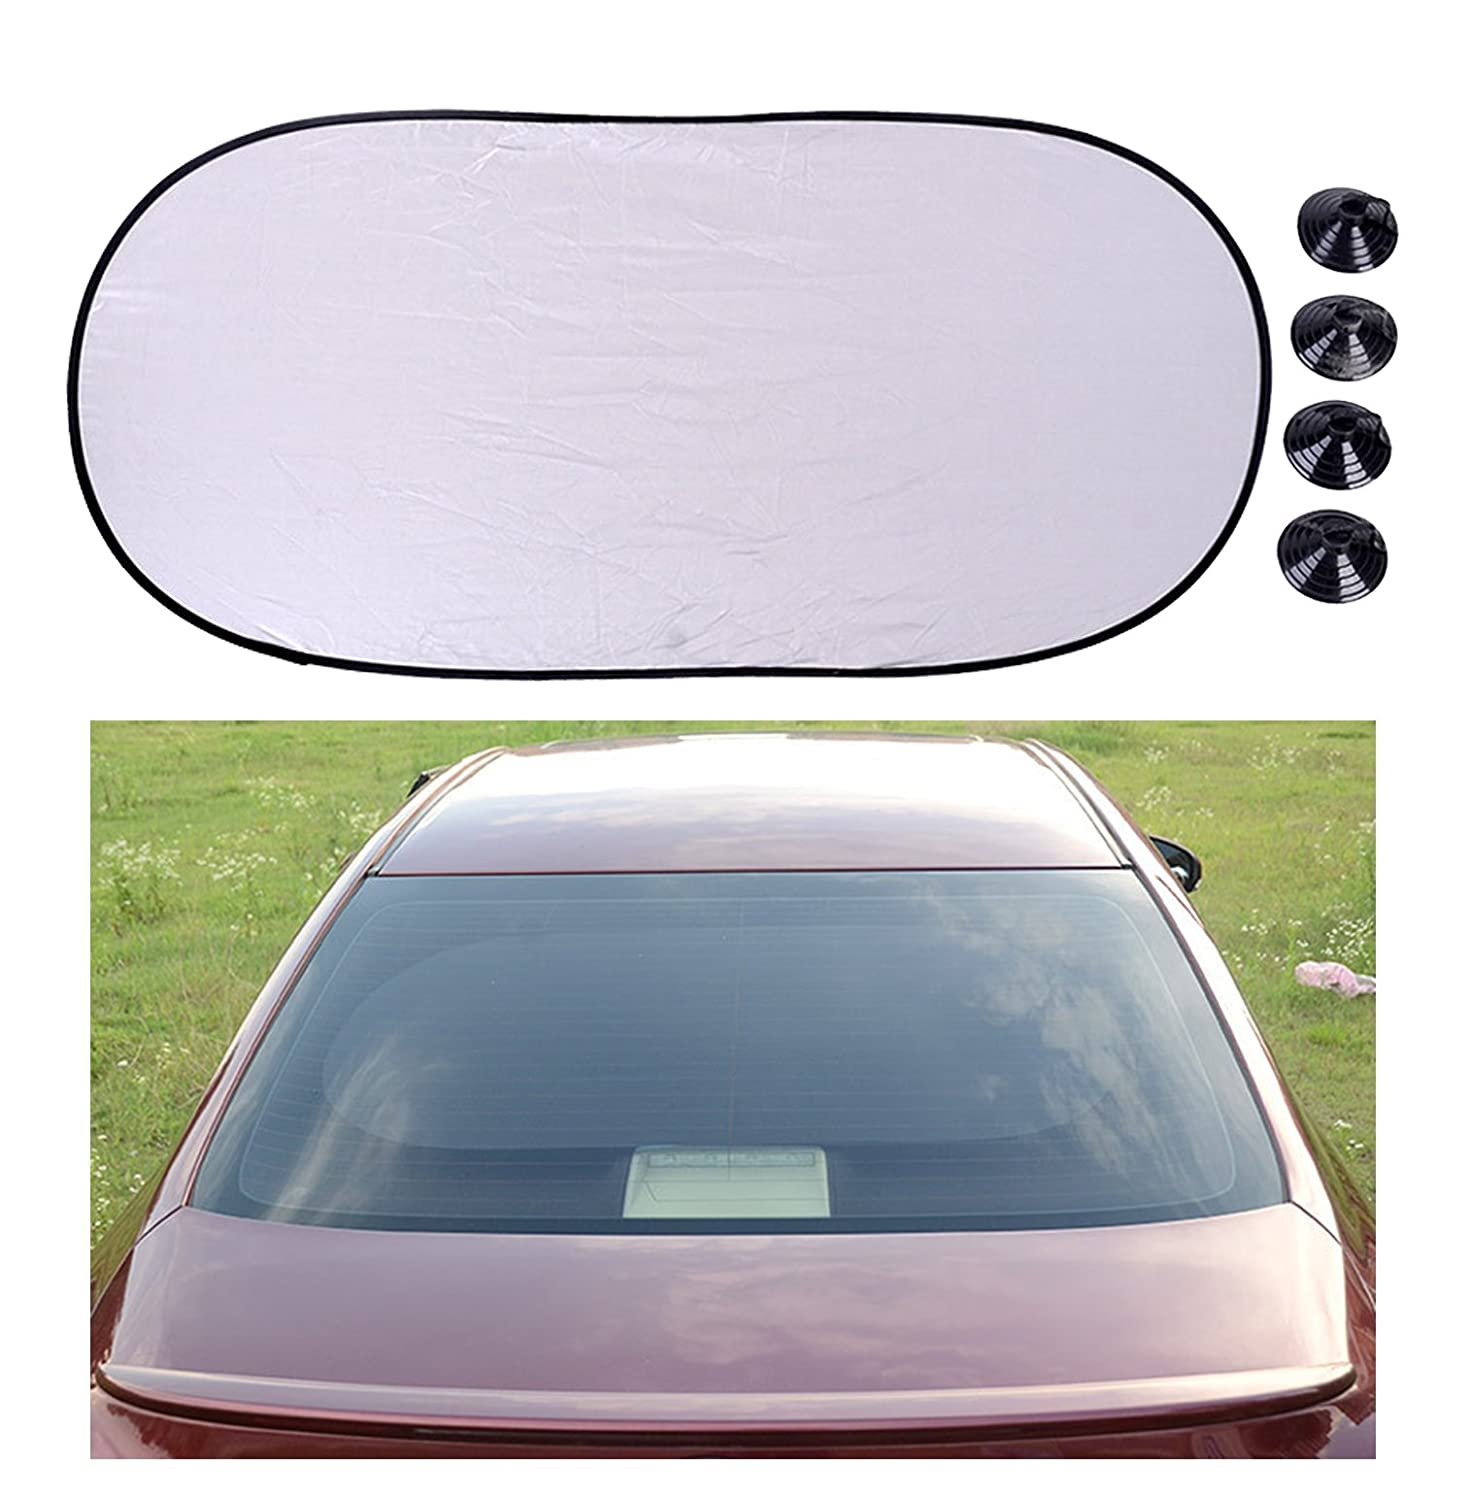 Chytaii Car Sunshades for rear Window Car Rear Window Sun Blind Shield Shade Car Back Window Sun Blind UV Protection and Heat Insulation for Children Baby Pets Foldable with Suction Cups 100*50cm